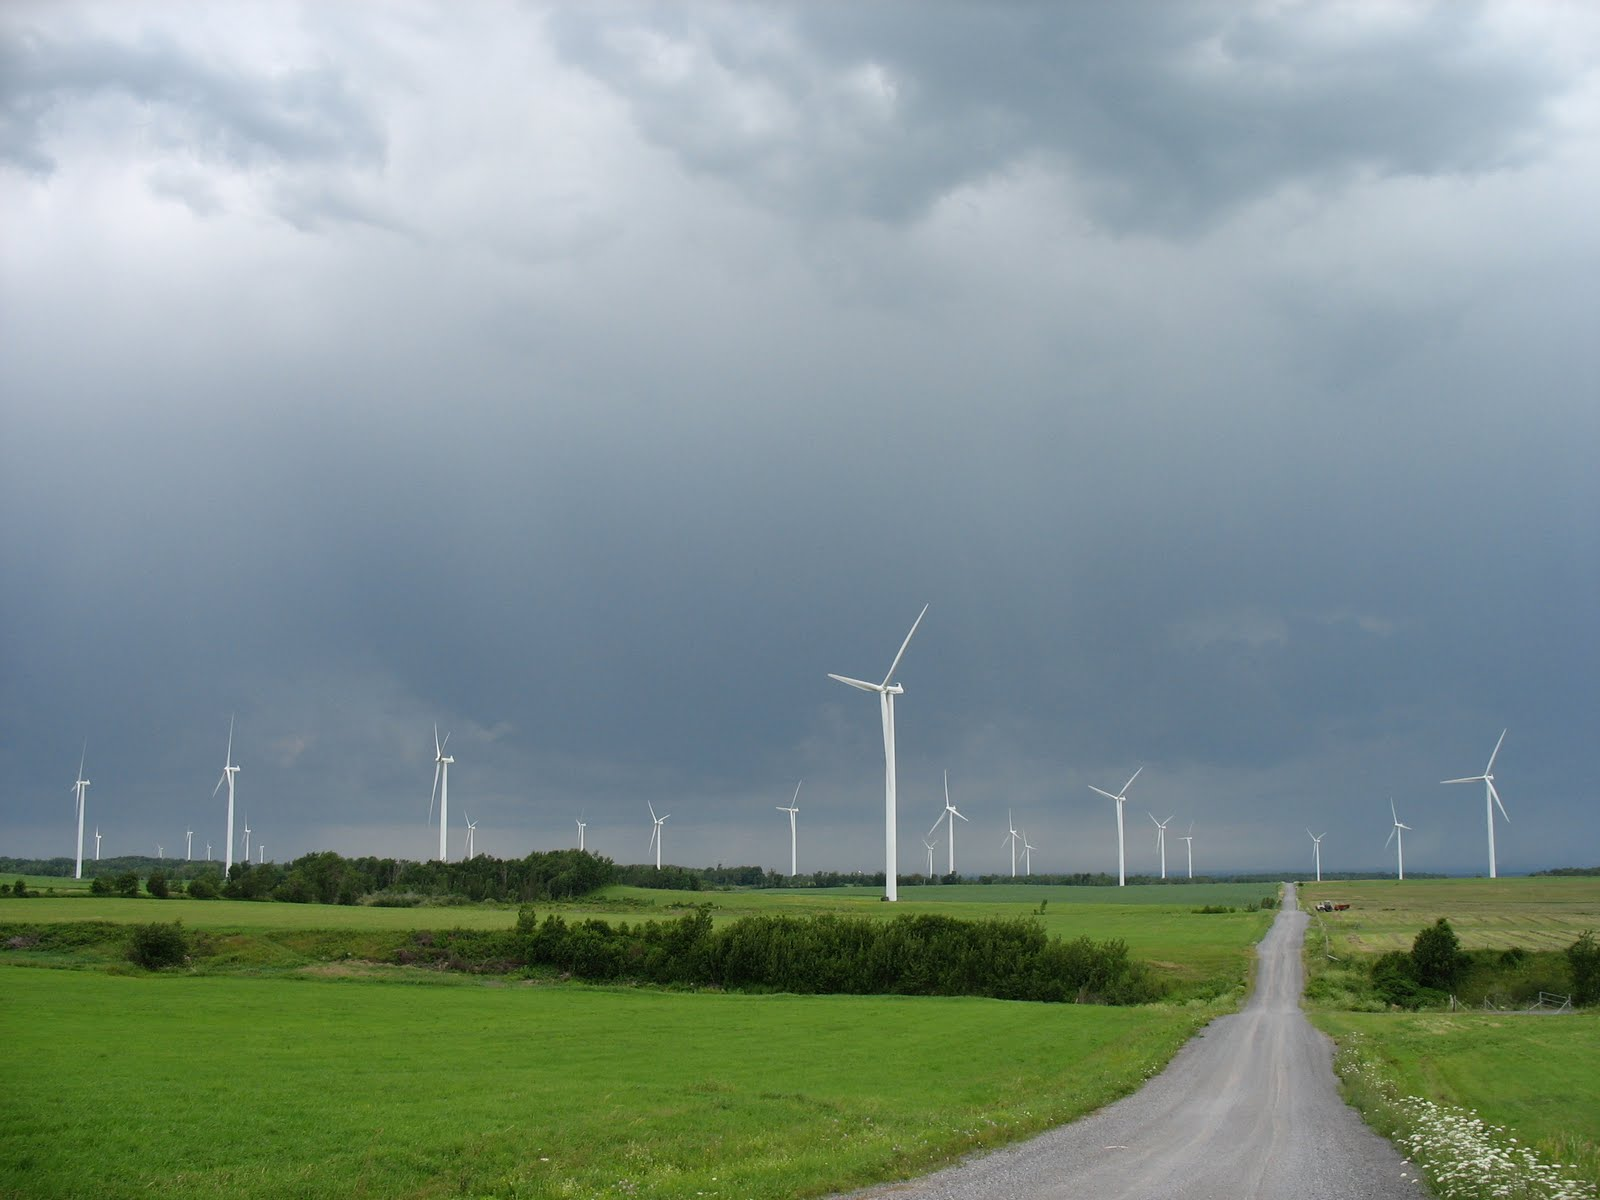 Wind energy facility in the Northeastern United States. Location: USA Photographer: Paul Cryan, , U.S. Geological Survey